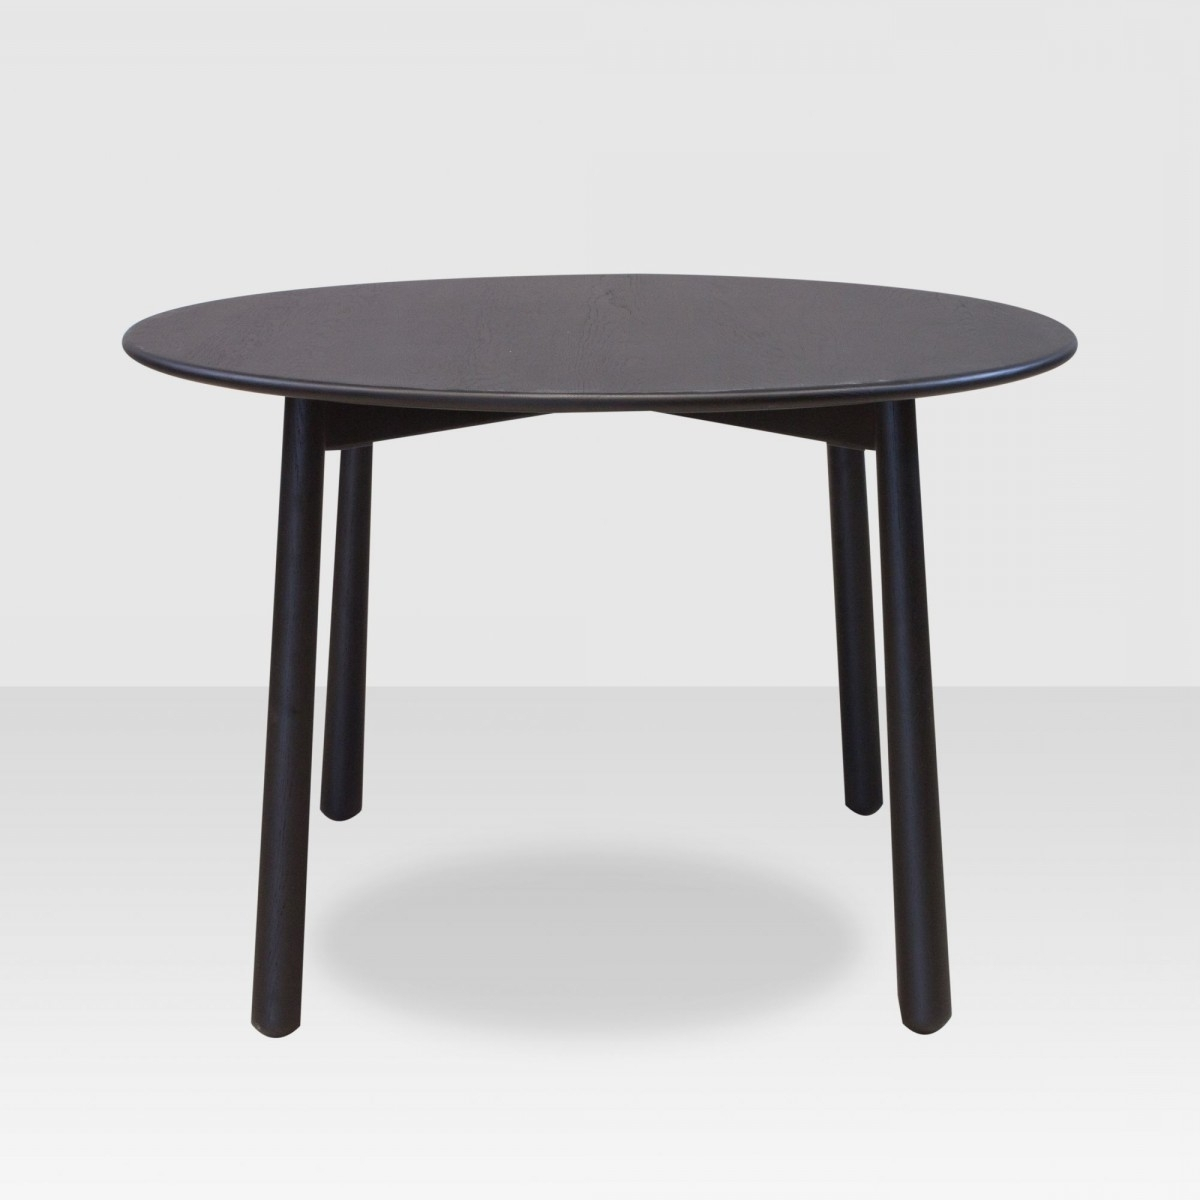 Nora Dining Tables Throughout Most Up To Date Nora Dining Table – Elte Market (Gallery 2 of 25)